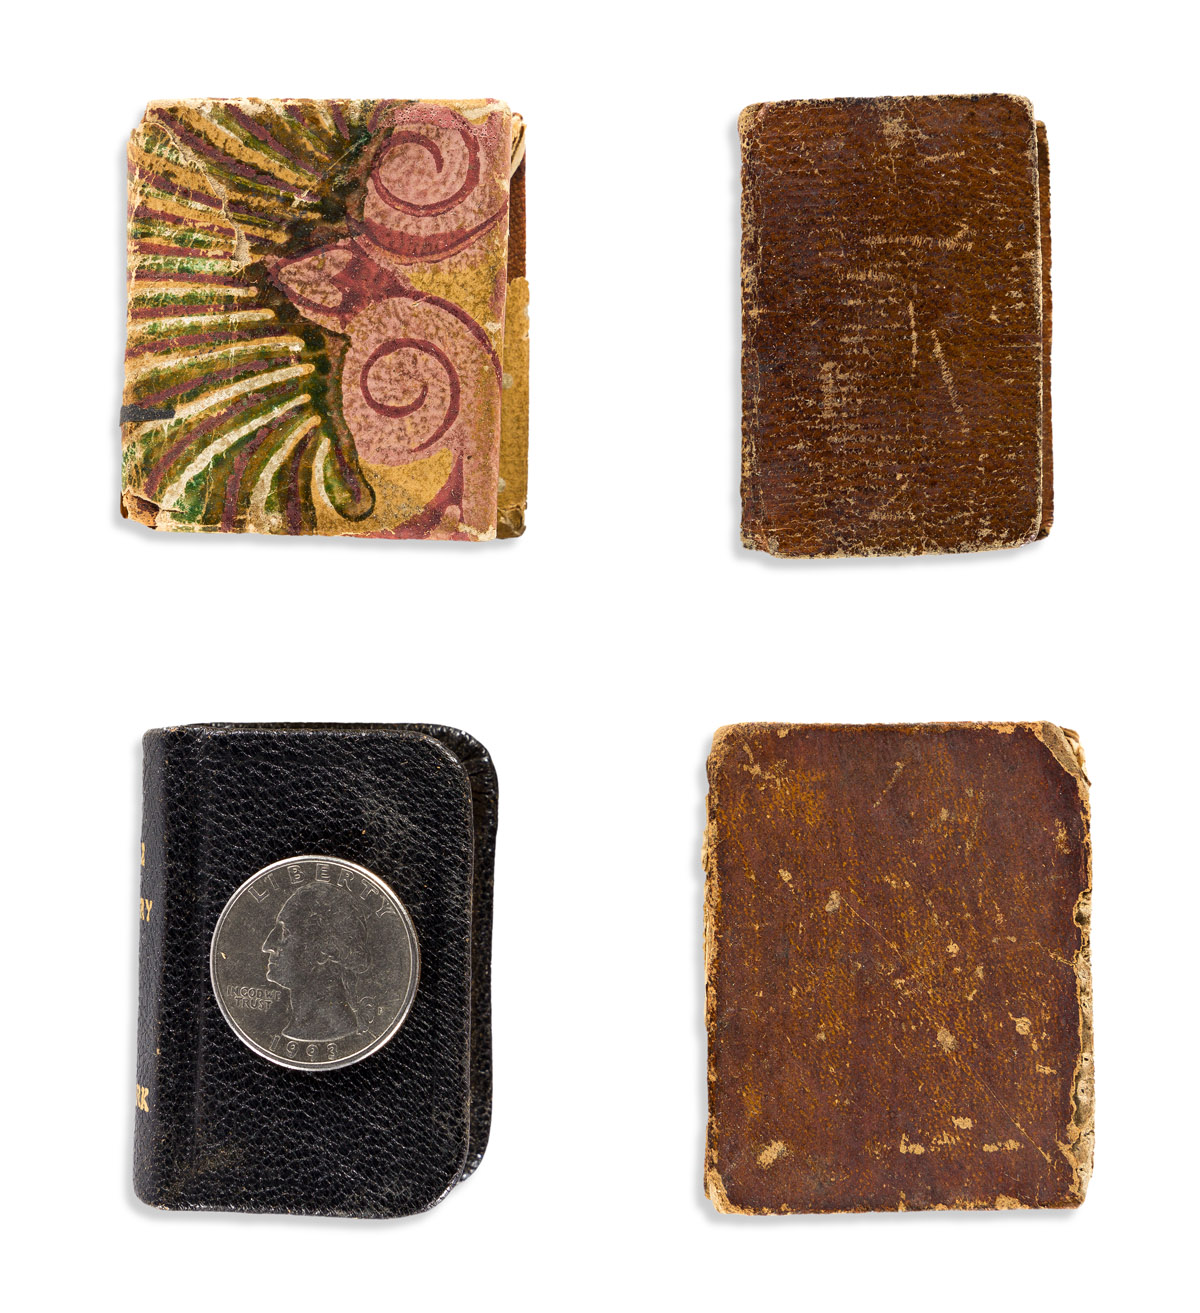 (BIBLE IN MINIATURE.) Group of 4 thumb Bibles--one of them unrecorded.